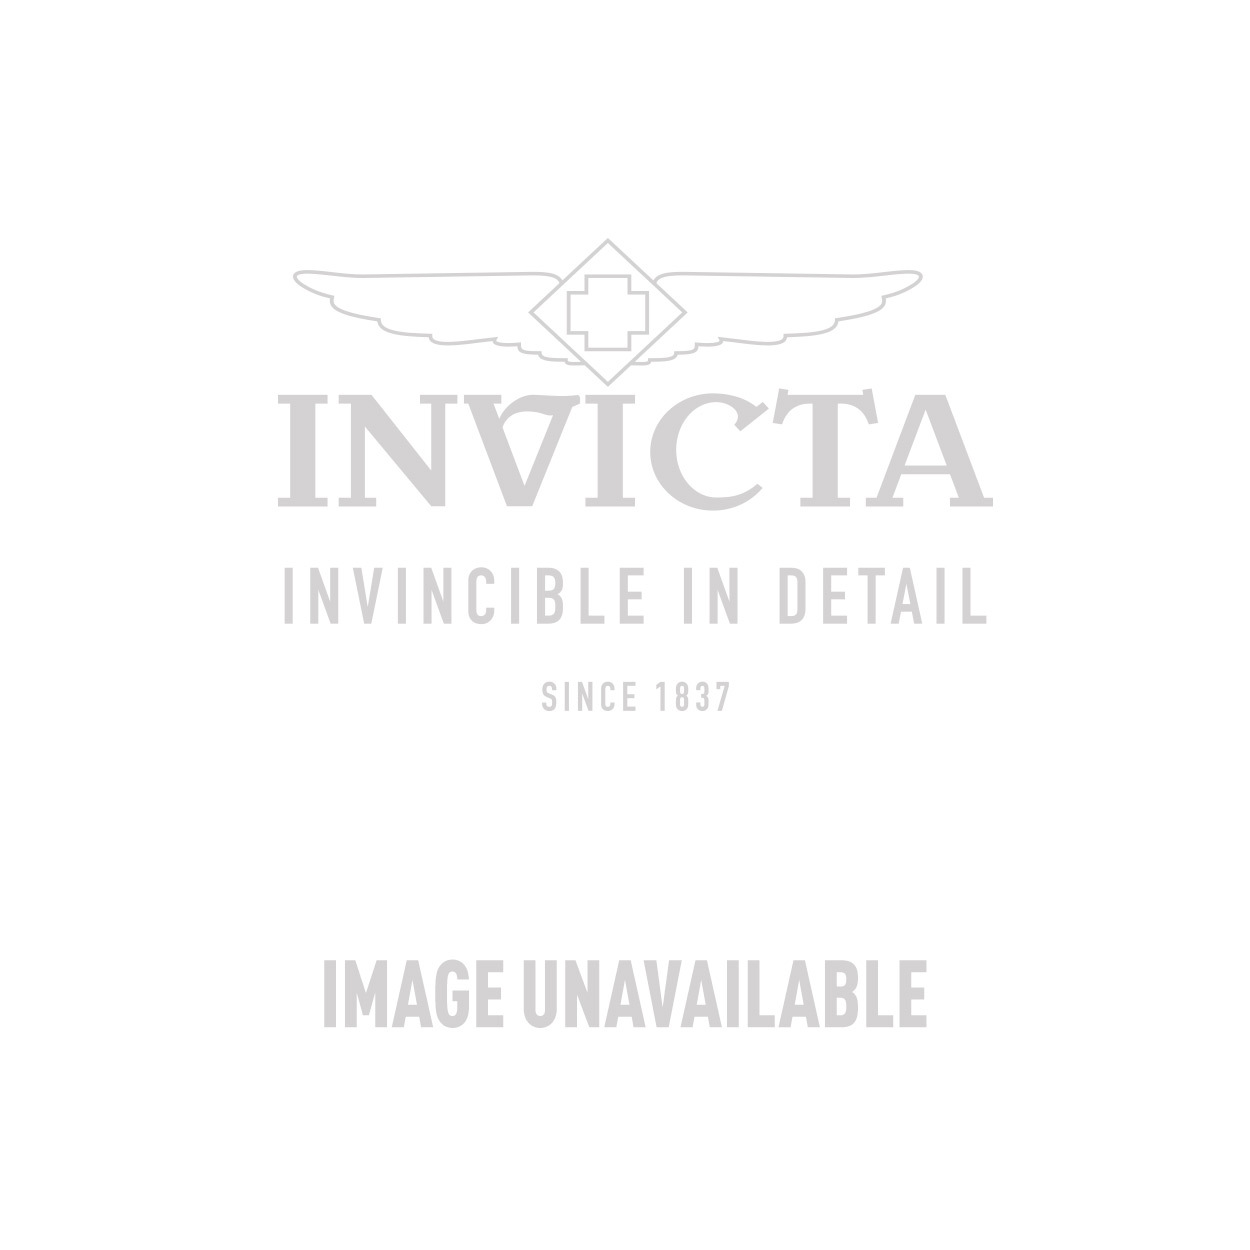 Invicta Corduba Swiss Movement Quartz Watch - Gold case with Gold tone Stainless Steel band - Model 90204